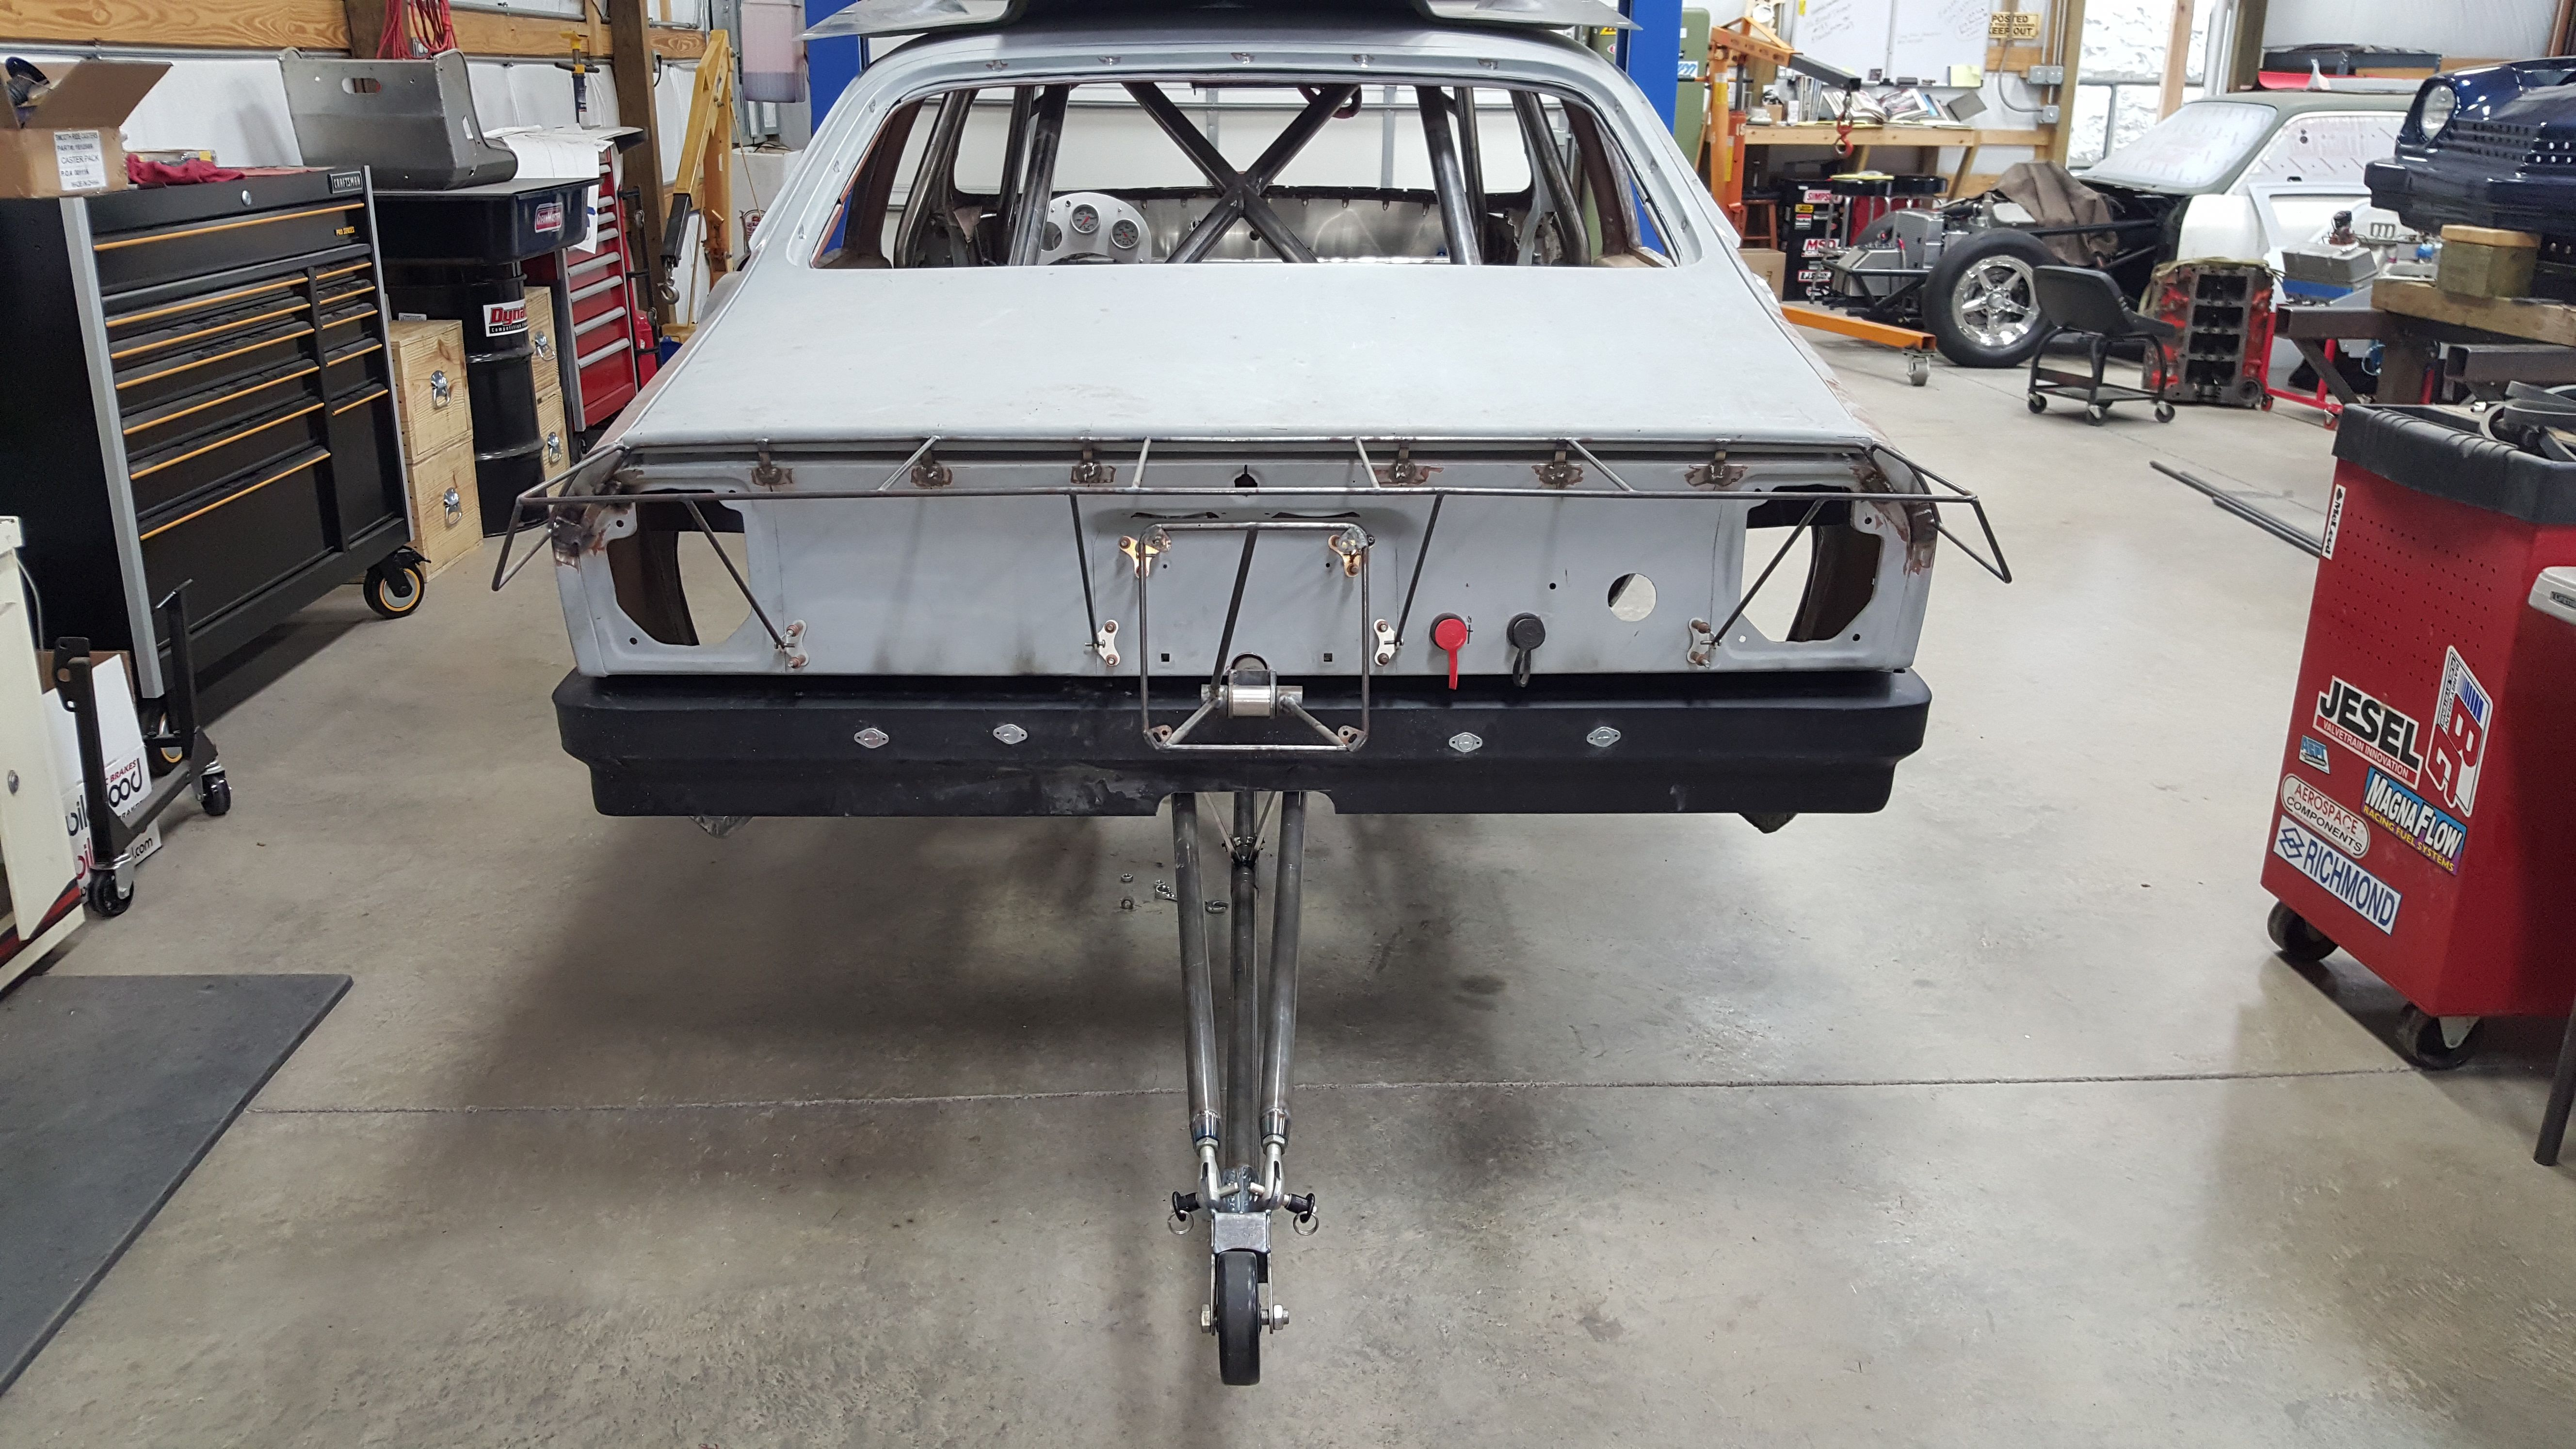 Chevy Vega Projects For Sale | Drag Racing | Cars, Tube chassis